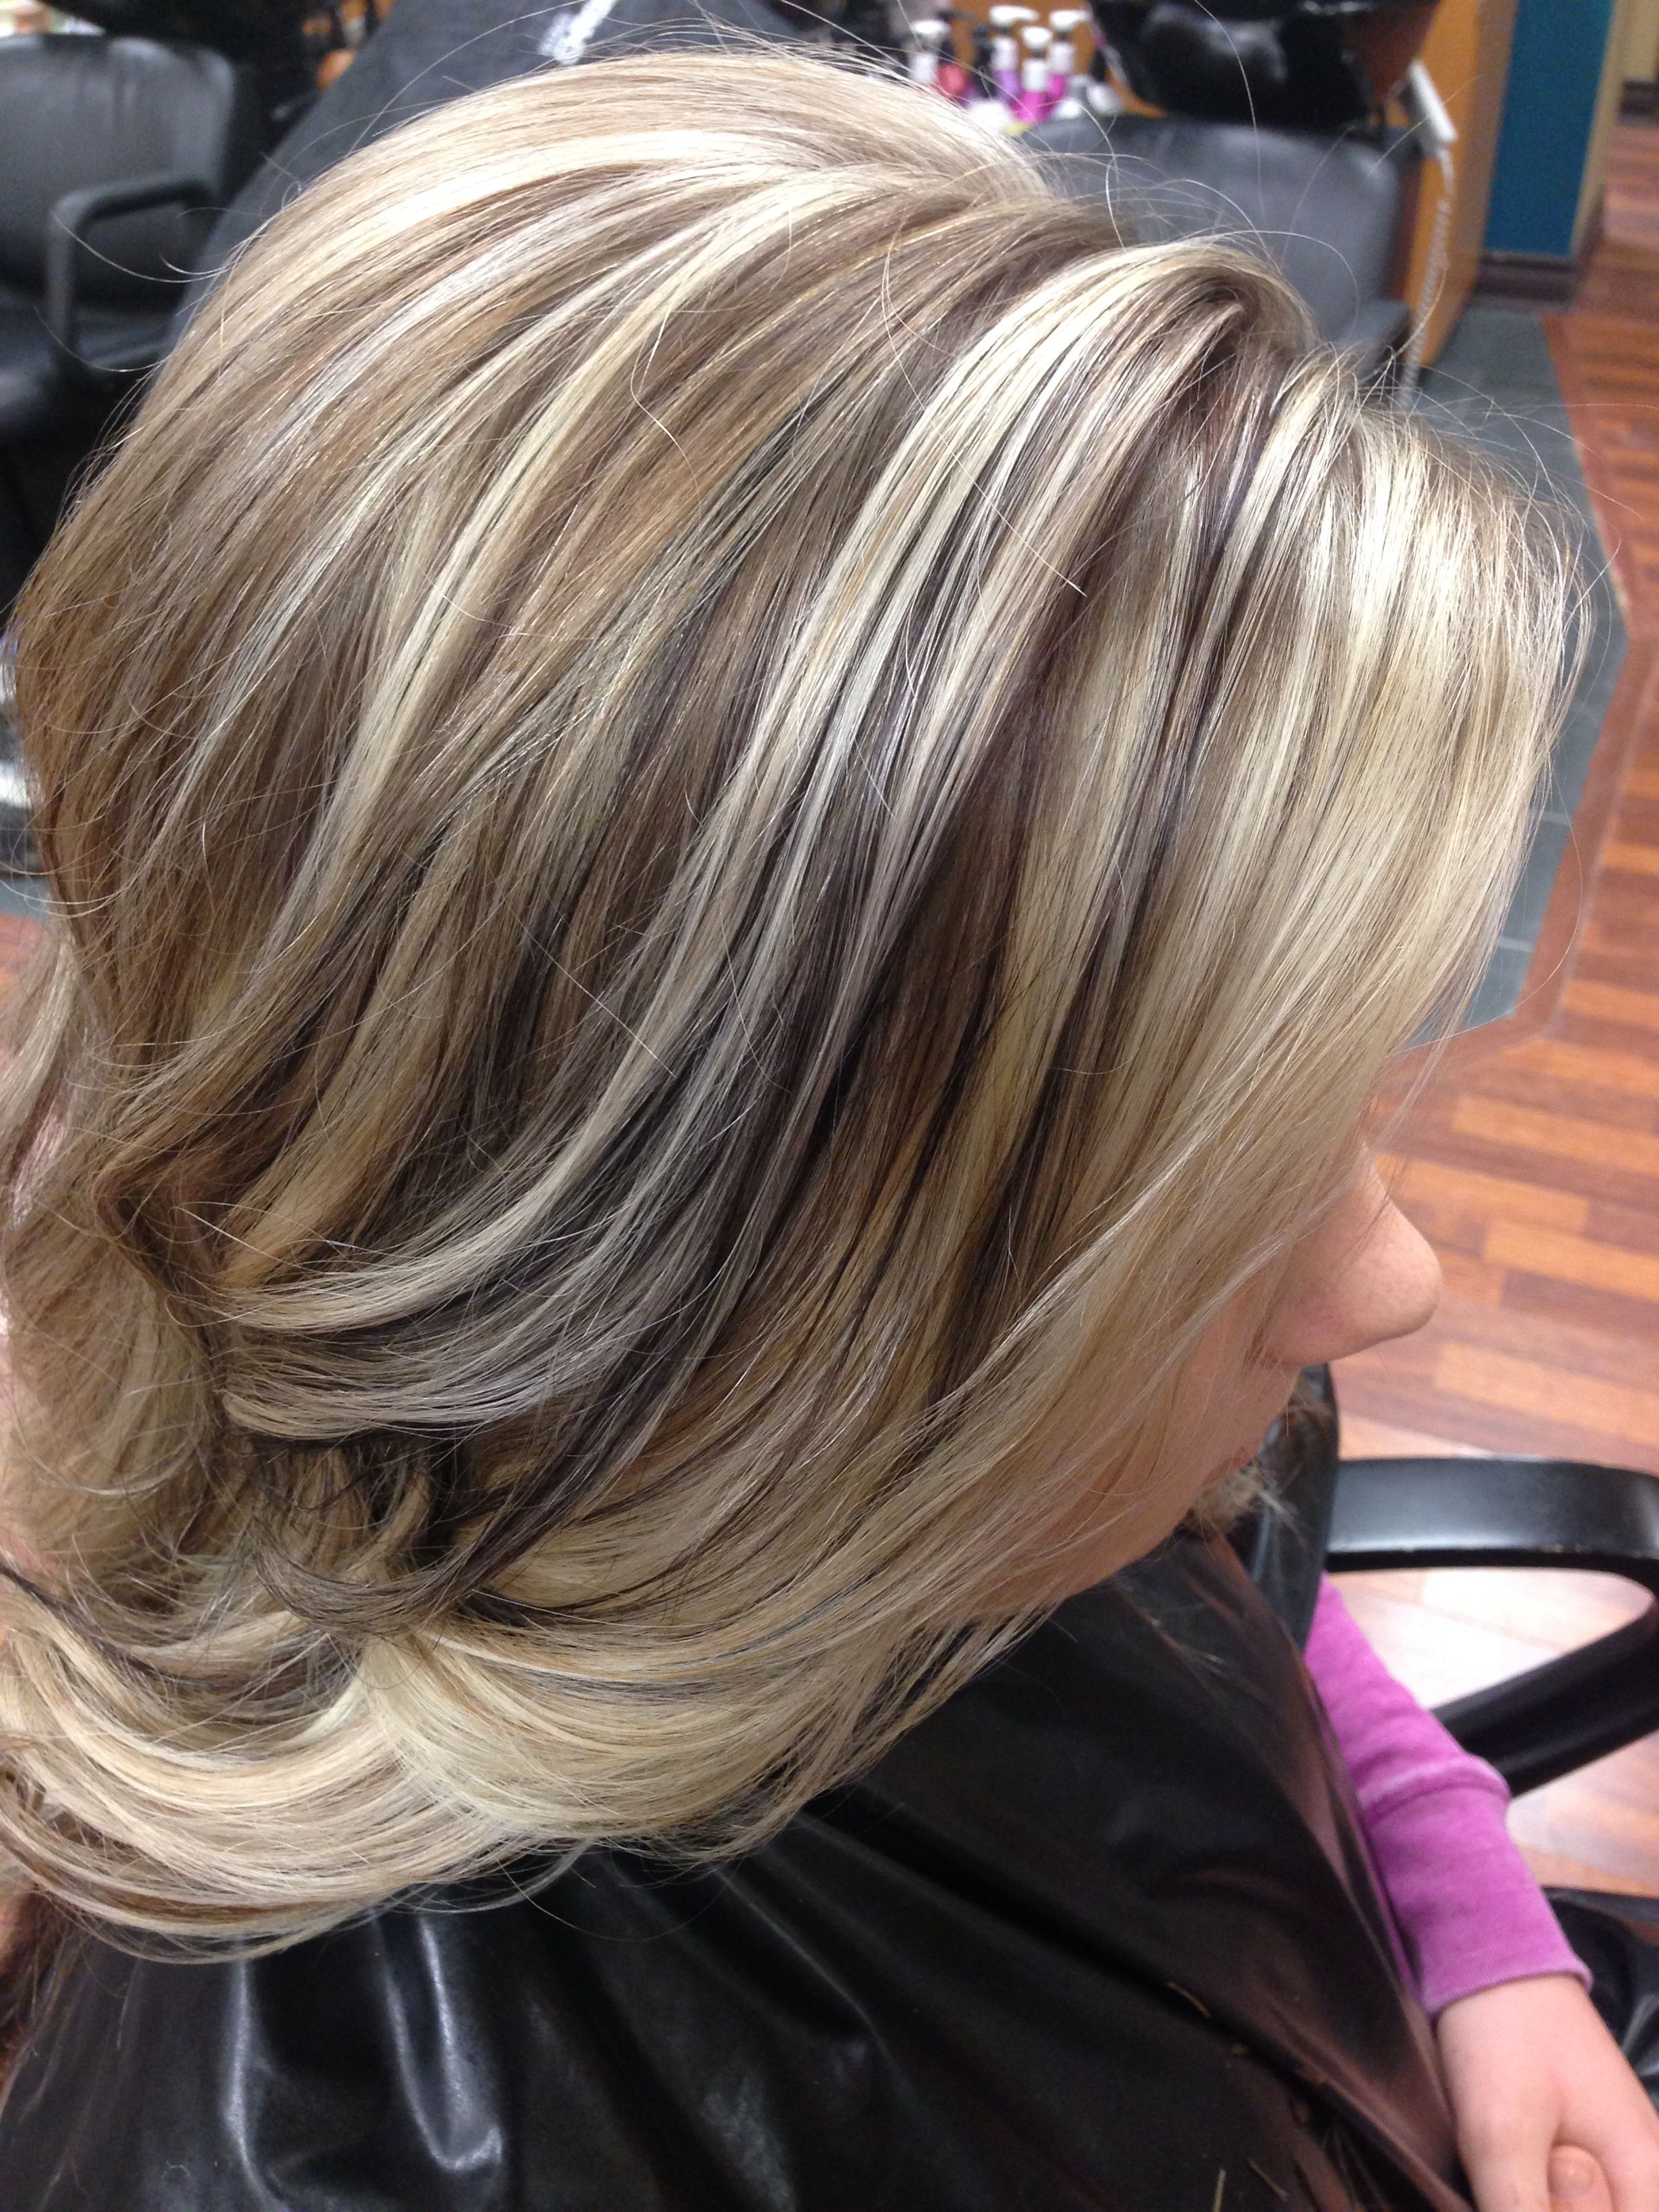 Dimensional Blonde Highlights Hair Portfolio In 2019